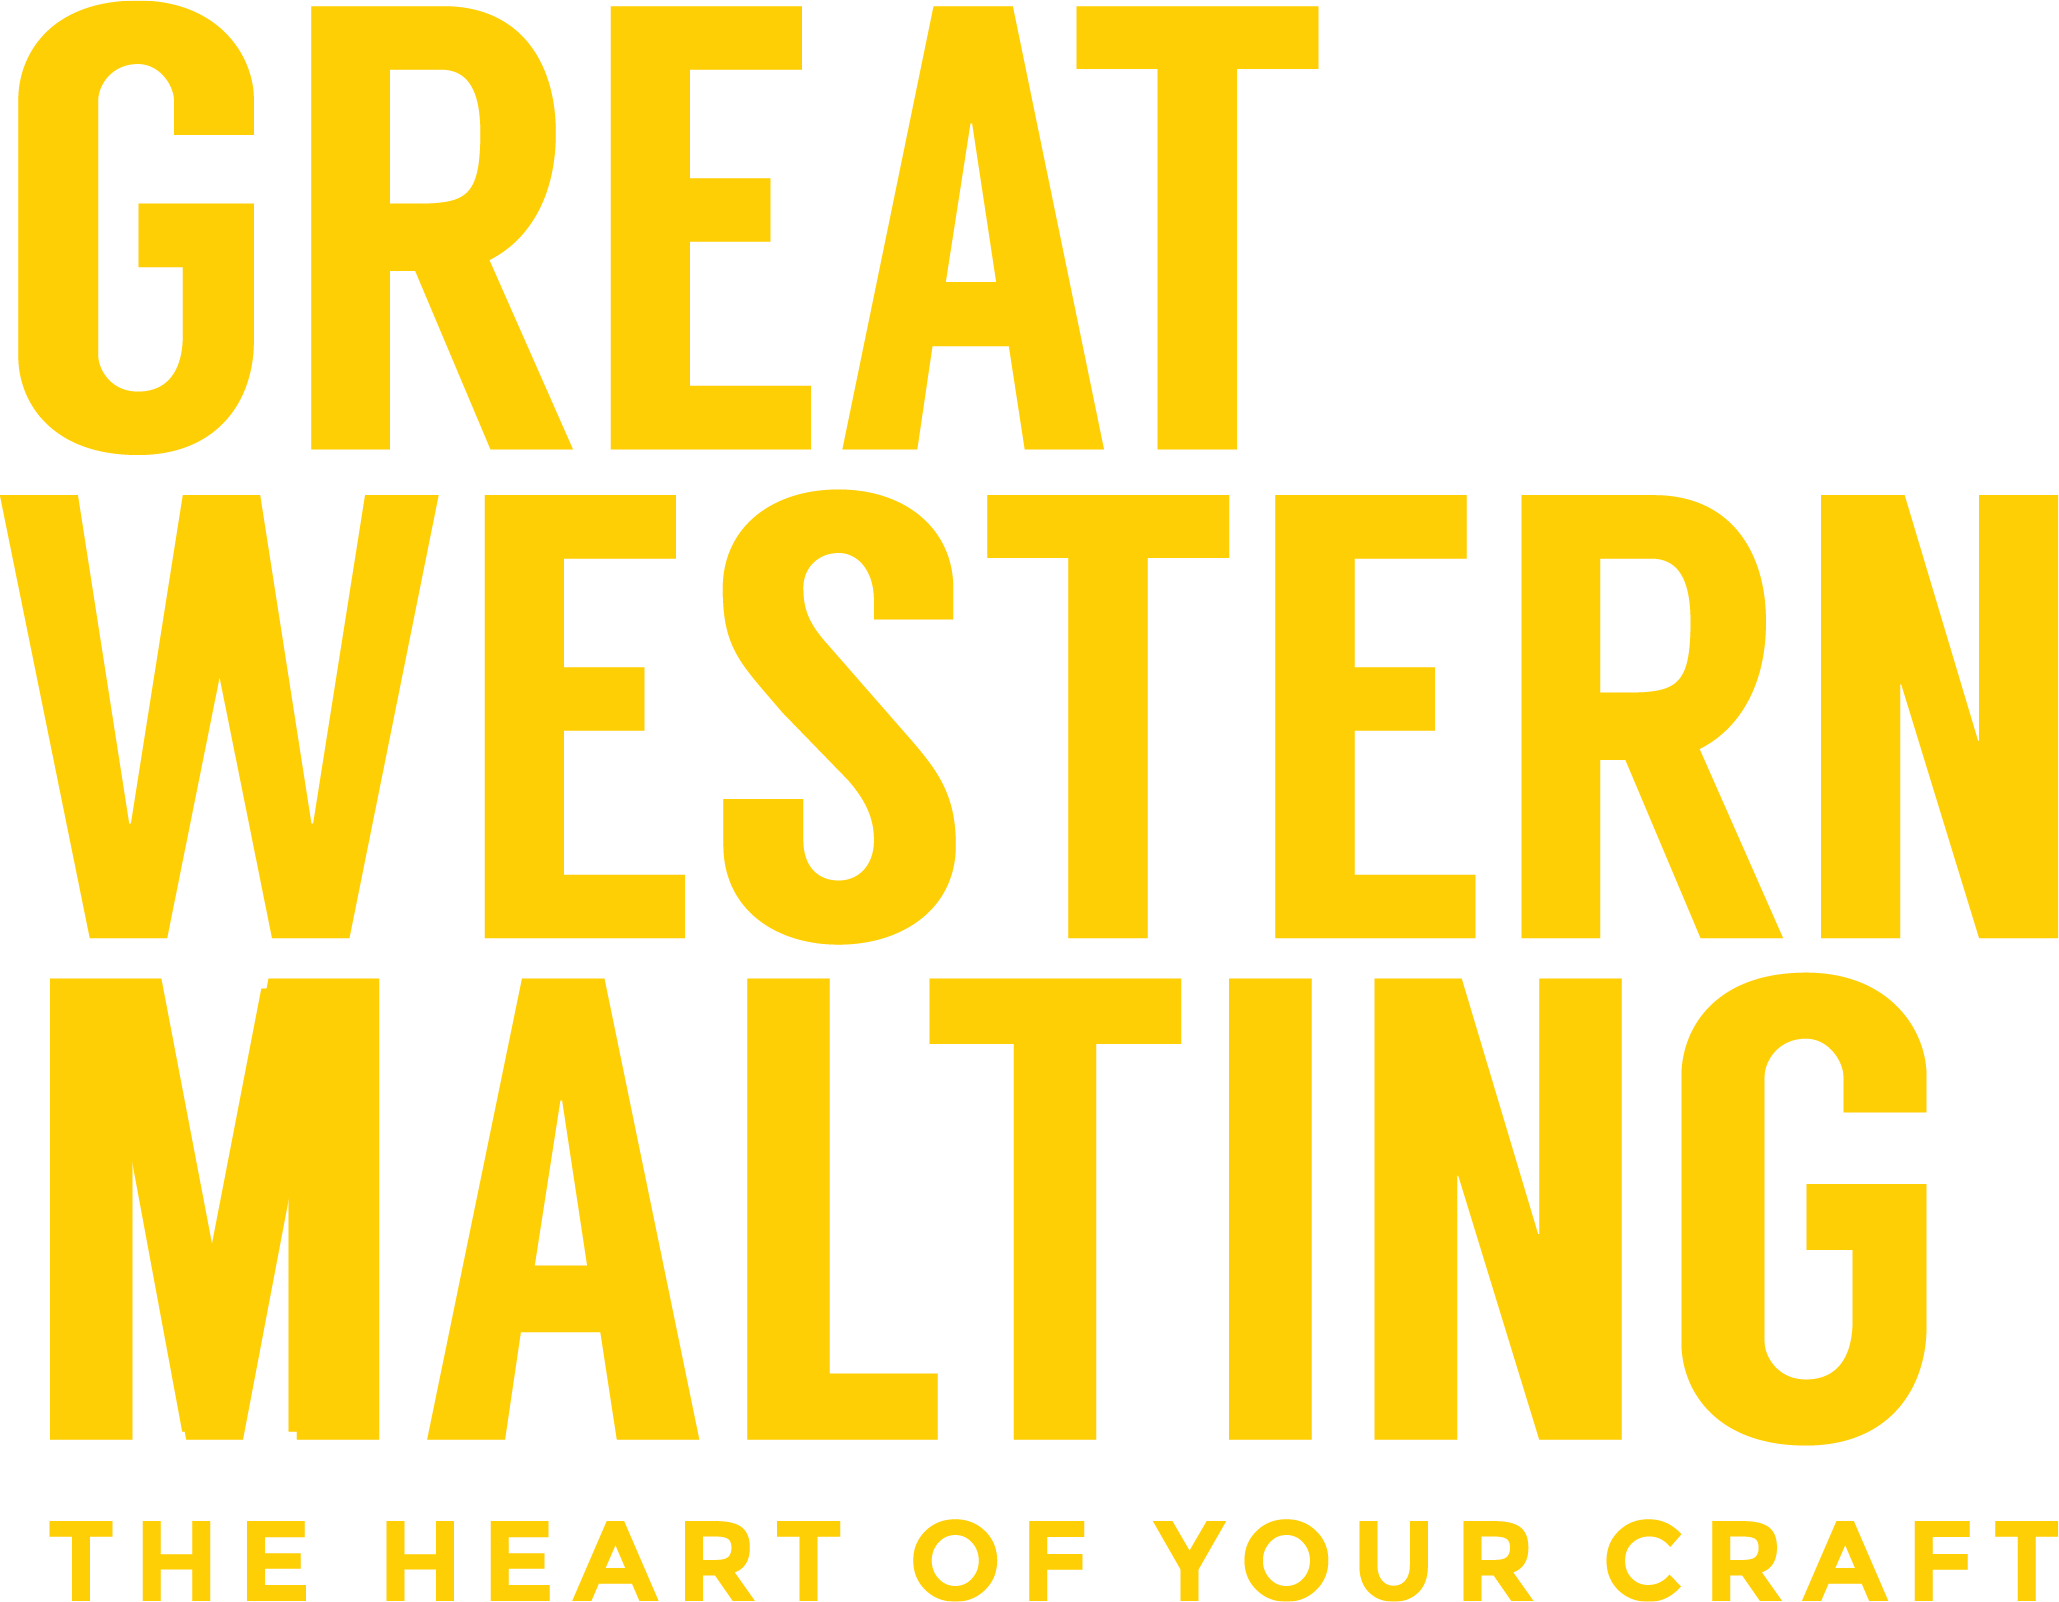 Great Western Malting